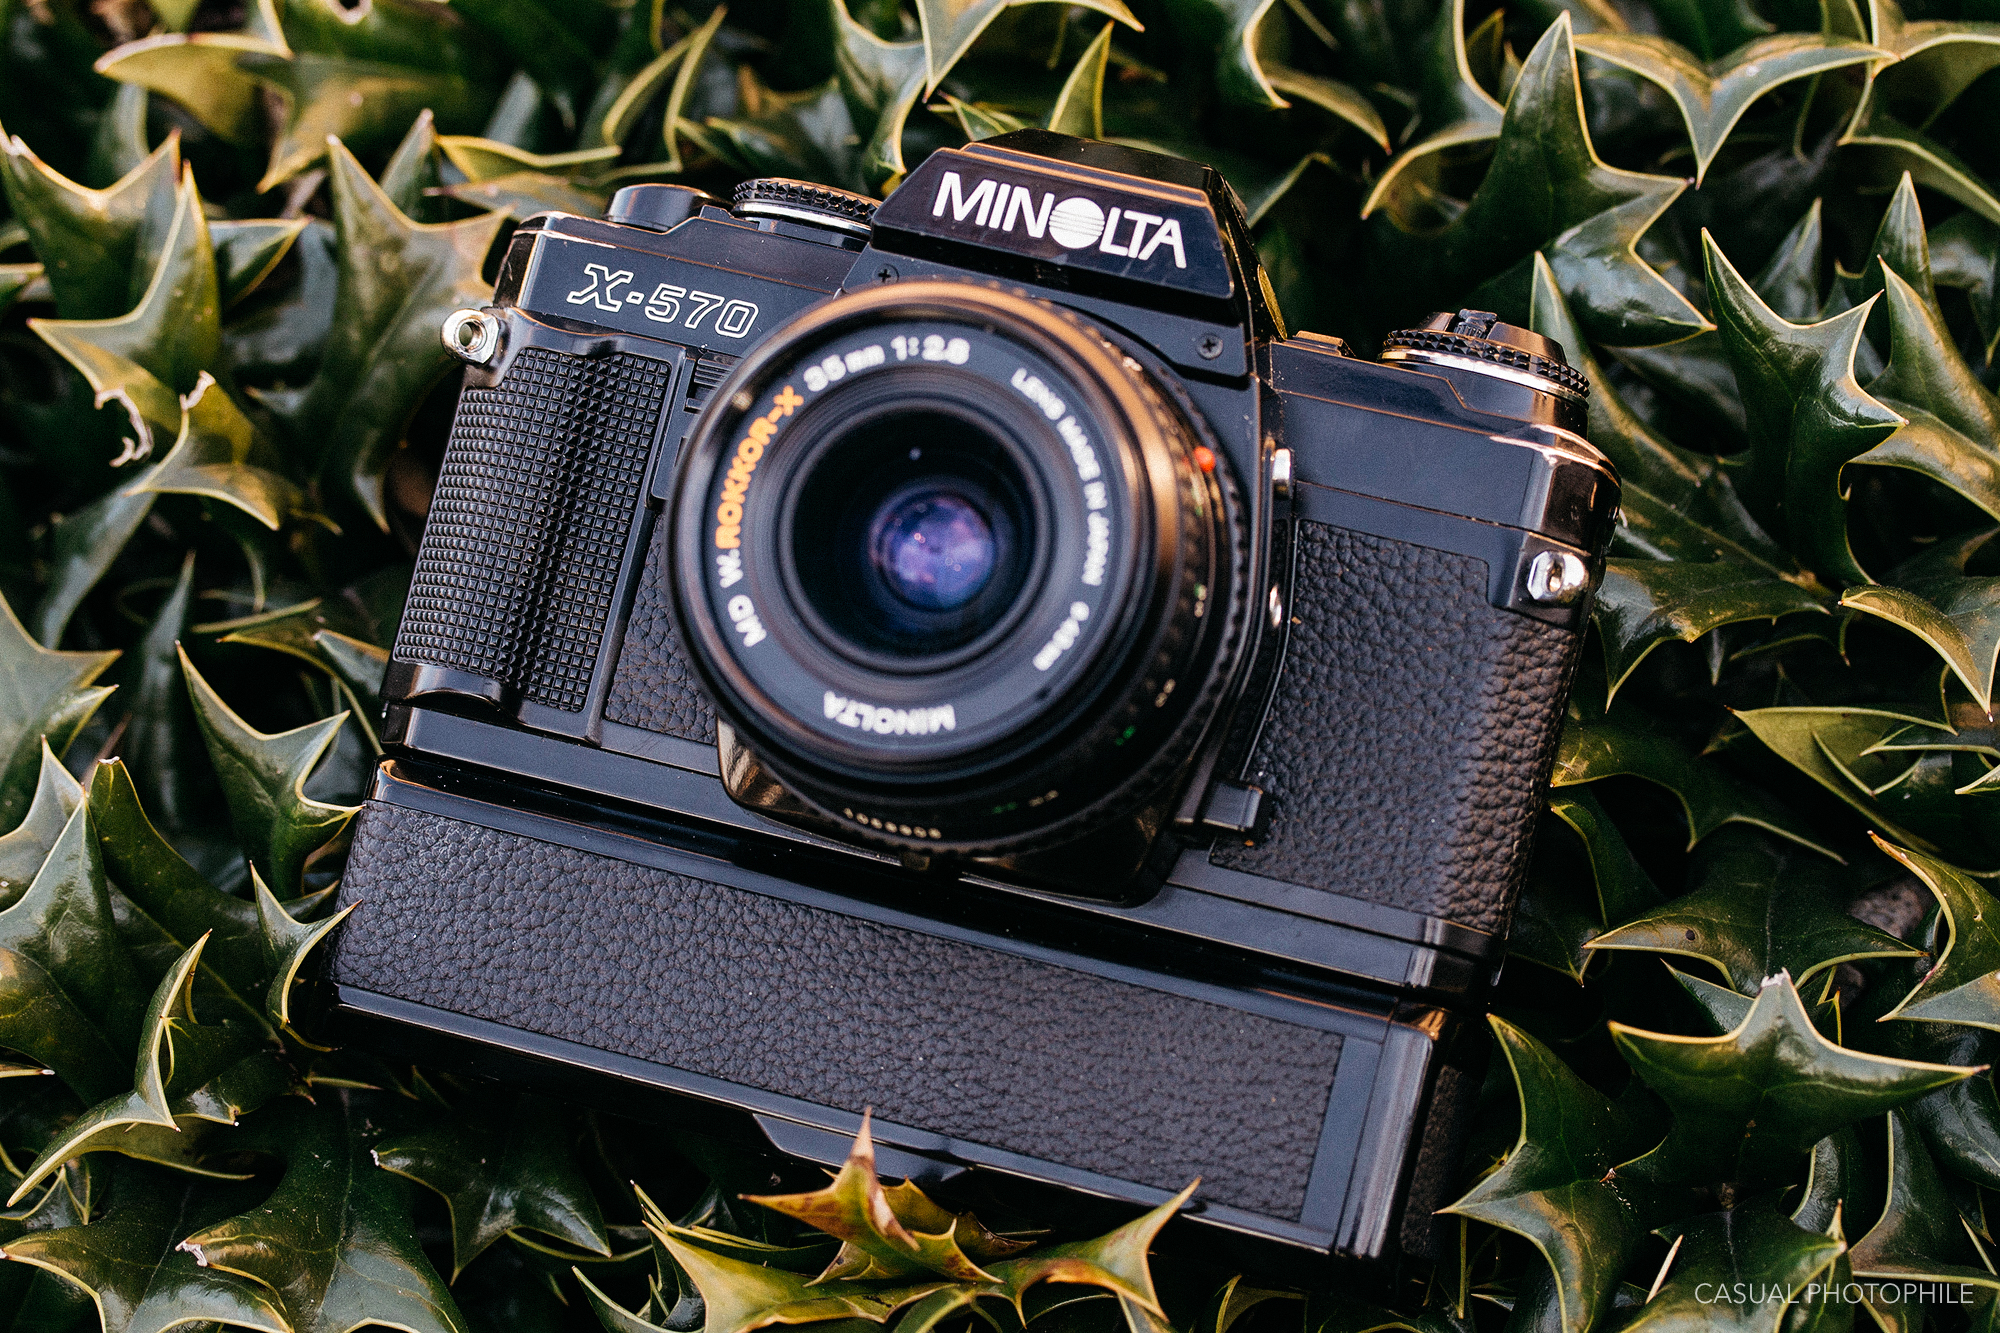 Minolta X-570 and the Maxxum 7000 - The End (and Beginning